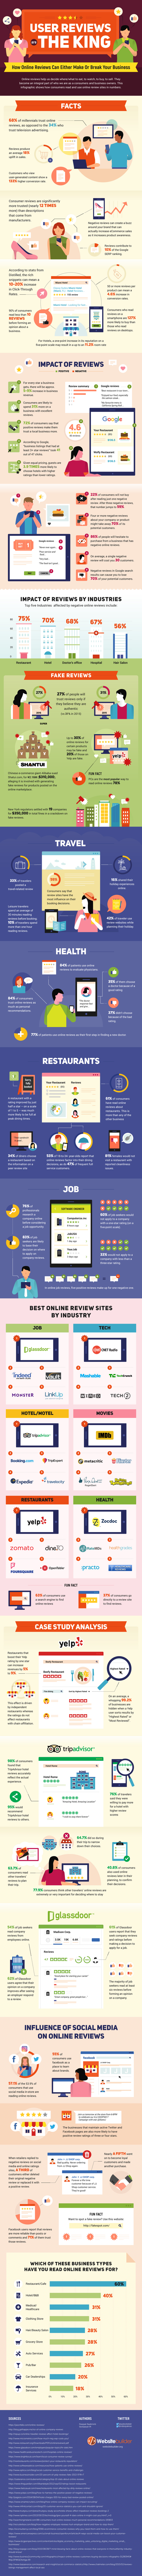 Online Reviews Can Make or Break Your Business